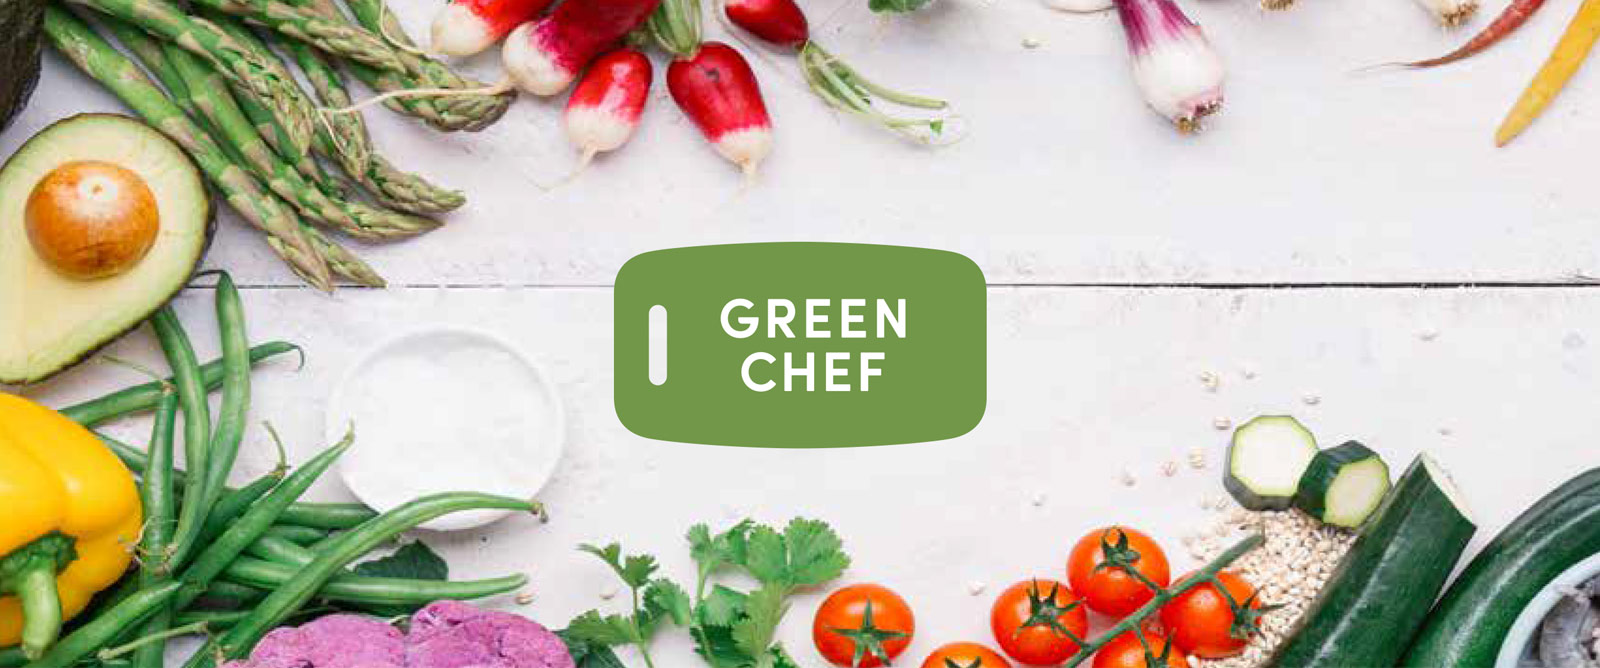 Green Chef - Organic Meal Delivery - Click here for $50 Off